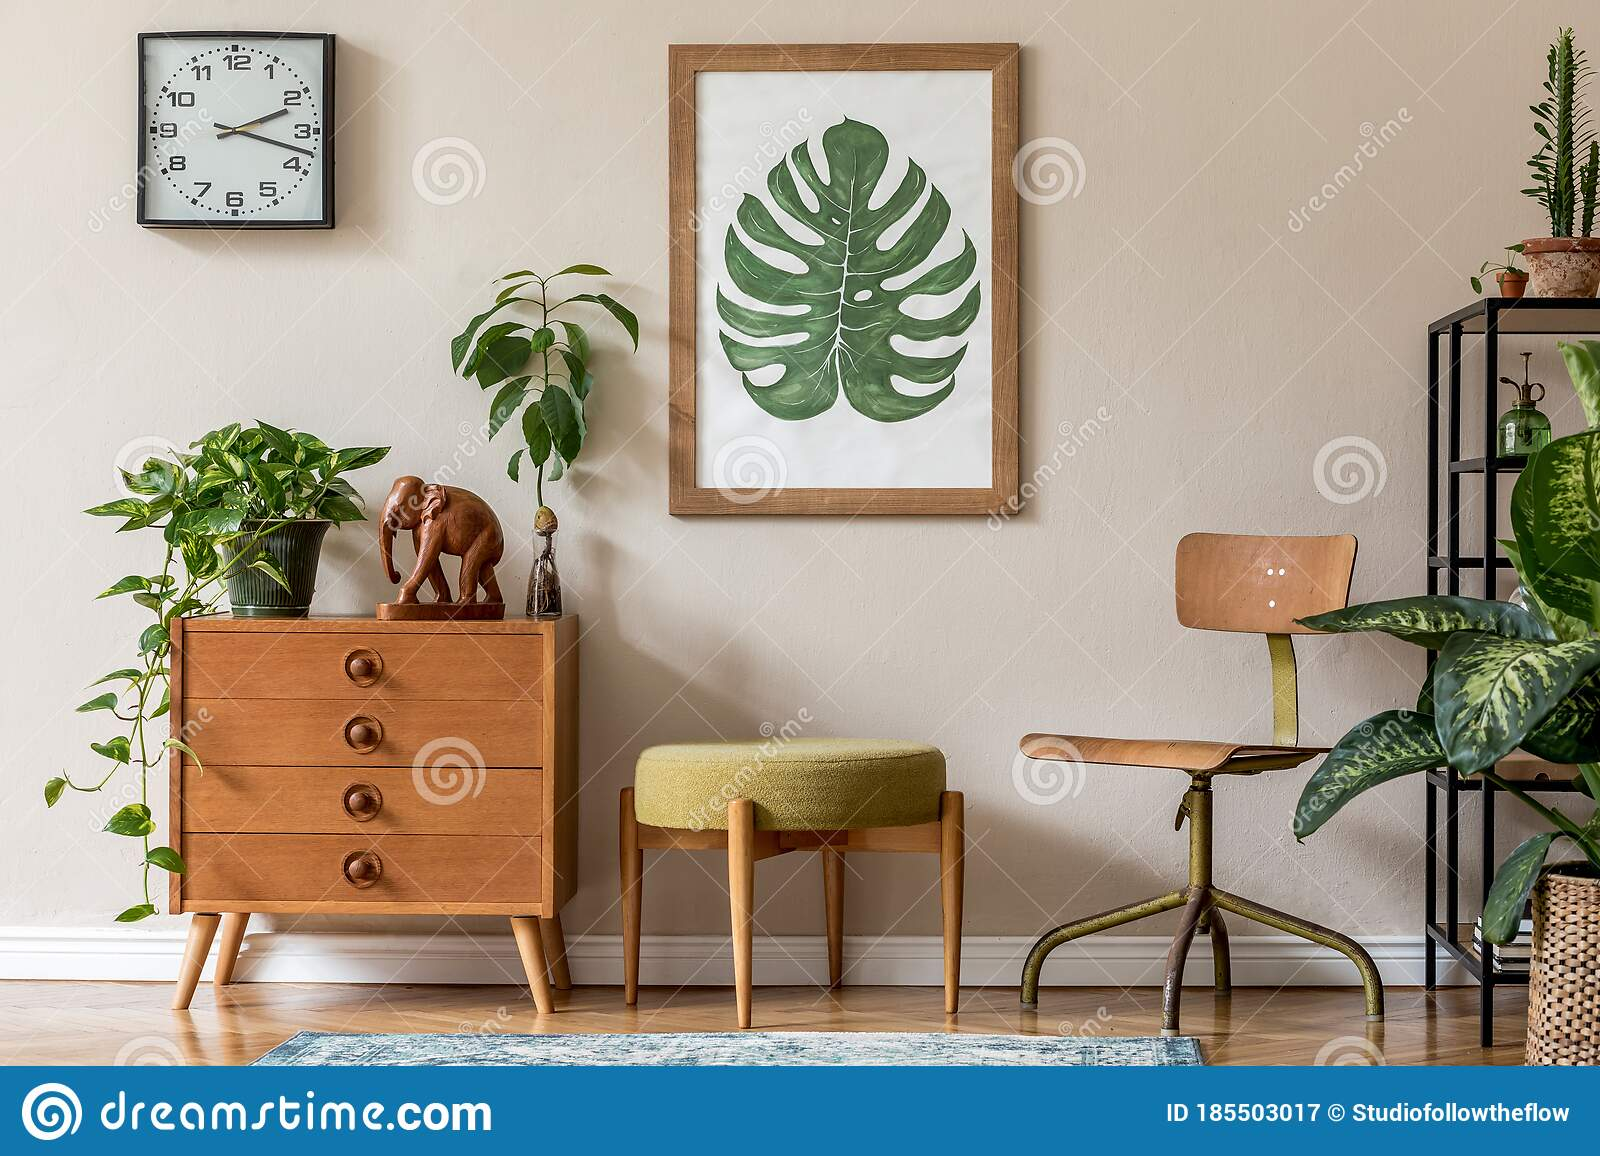 Stylish Living Room With Design Retro Furnitures And Plants Stock Image Image Of Desk Chair 185503017